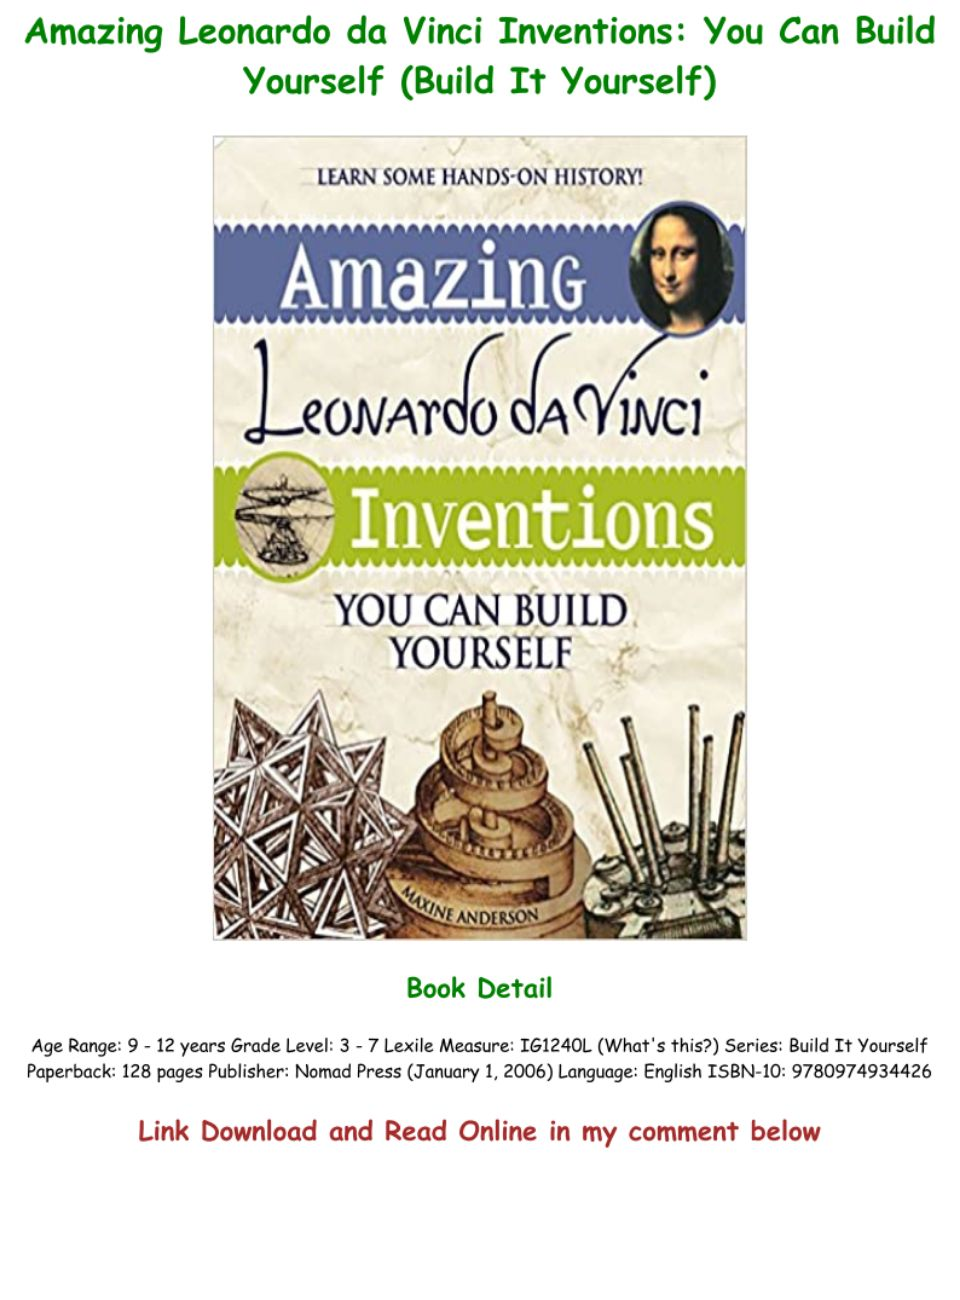 Leonard De Vinci Inventions Pdf : leonard, vinci, inventions, DOWNLOAD, [PDF], Amazing, Leonardo, Vinci, Inventions:, Build, Yourself, (Build, Yourself), Text,, Images,, Music,, Video, Glogster, Interactive, Multimedia, Posters